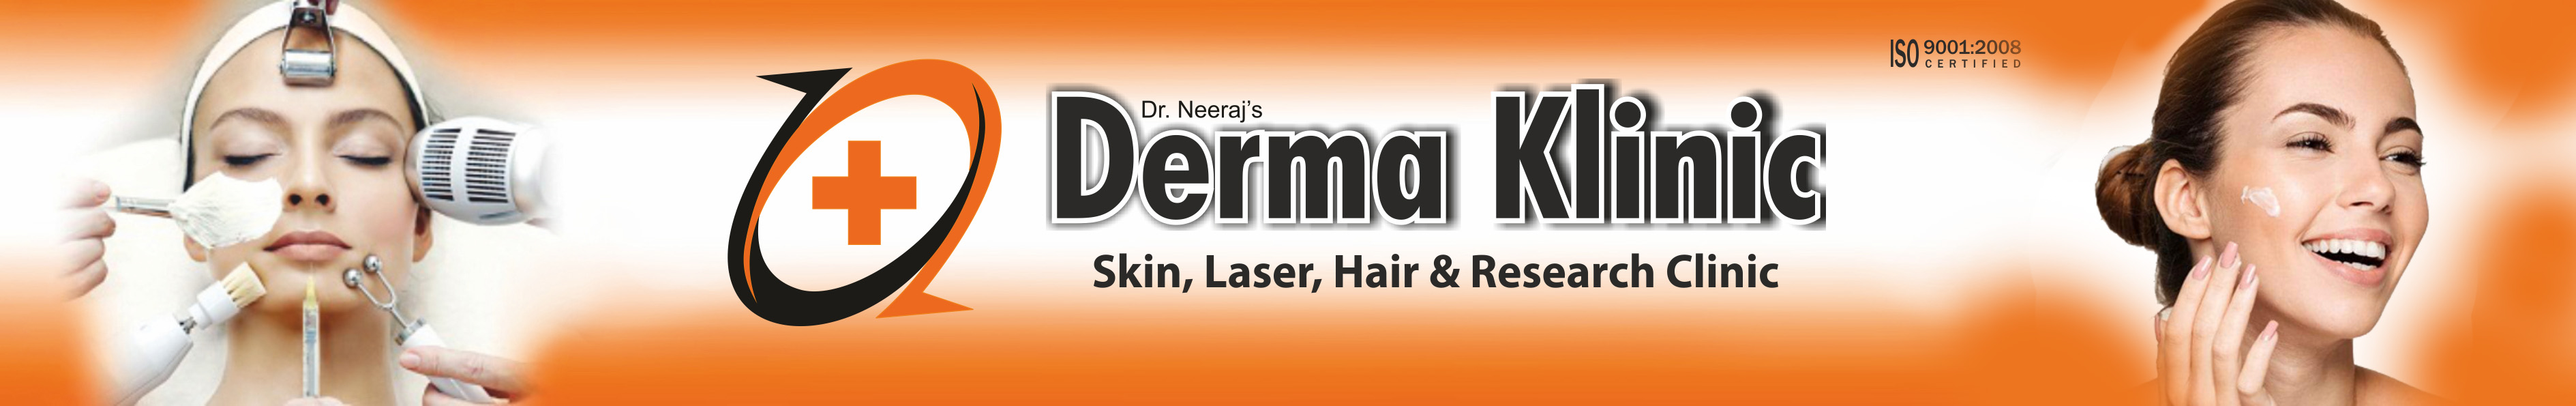 Laser Treatment for Hair Removal in Lucknow